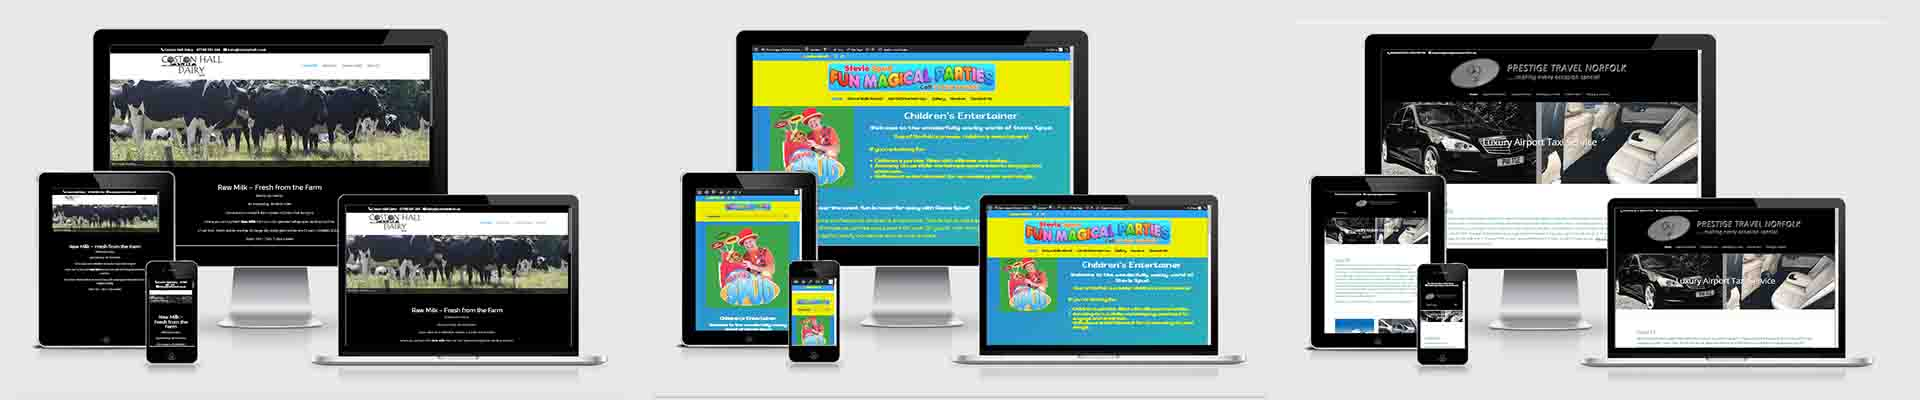 Websites designs on different sized screens